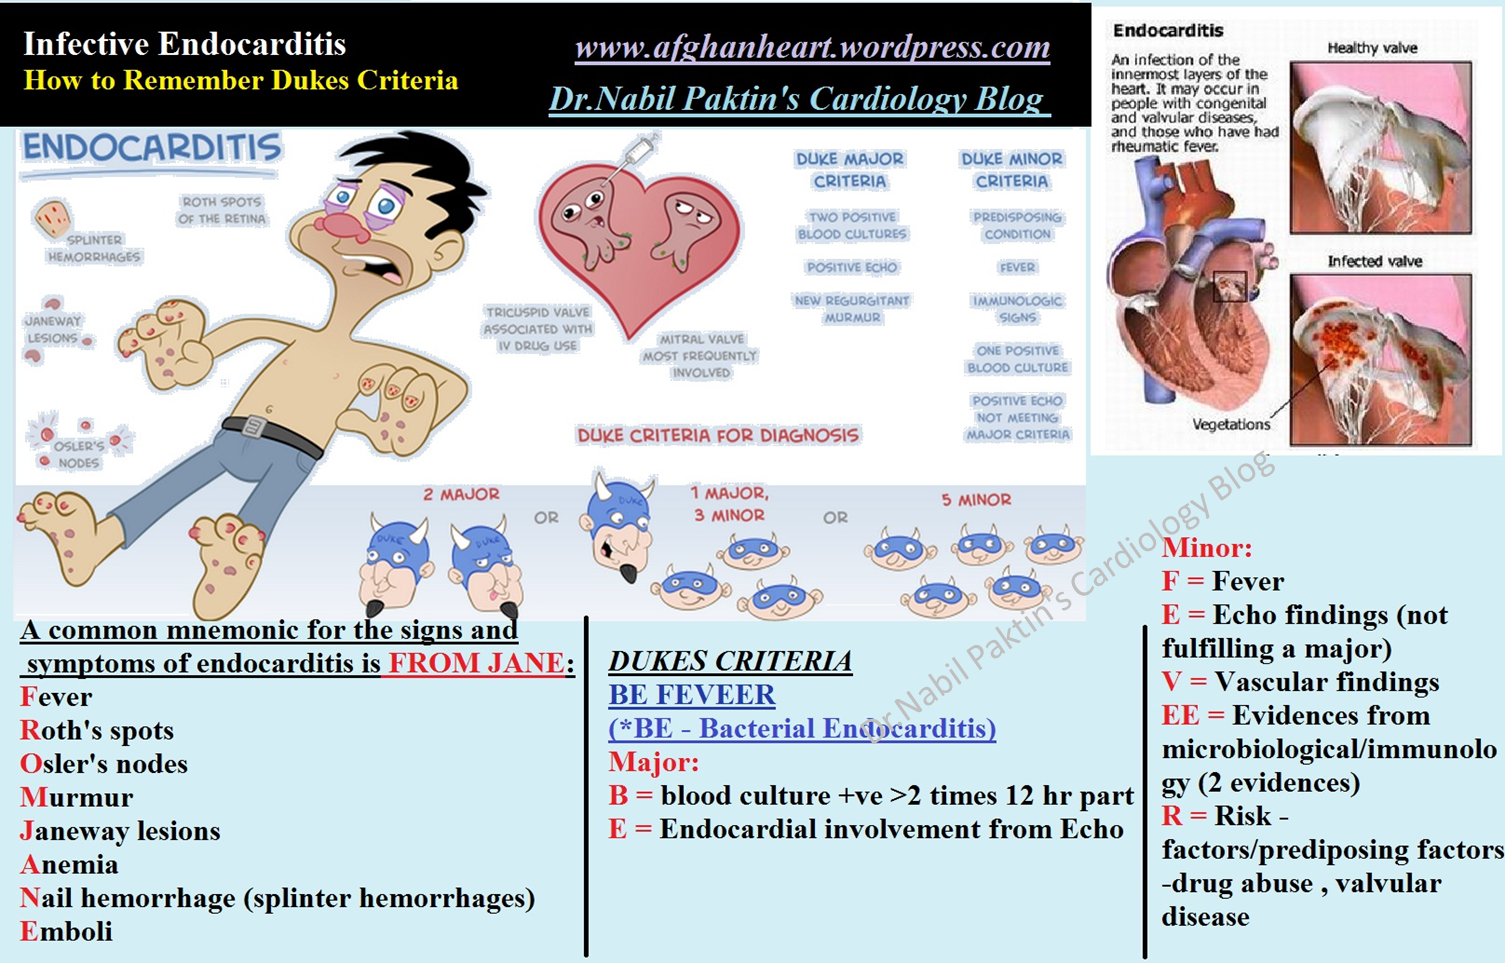 Infective Endocarditis Signs And Symptoms